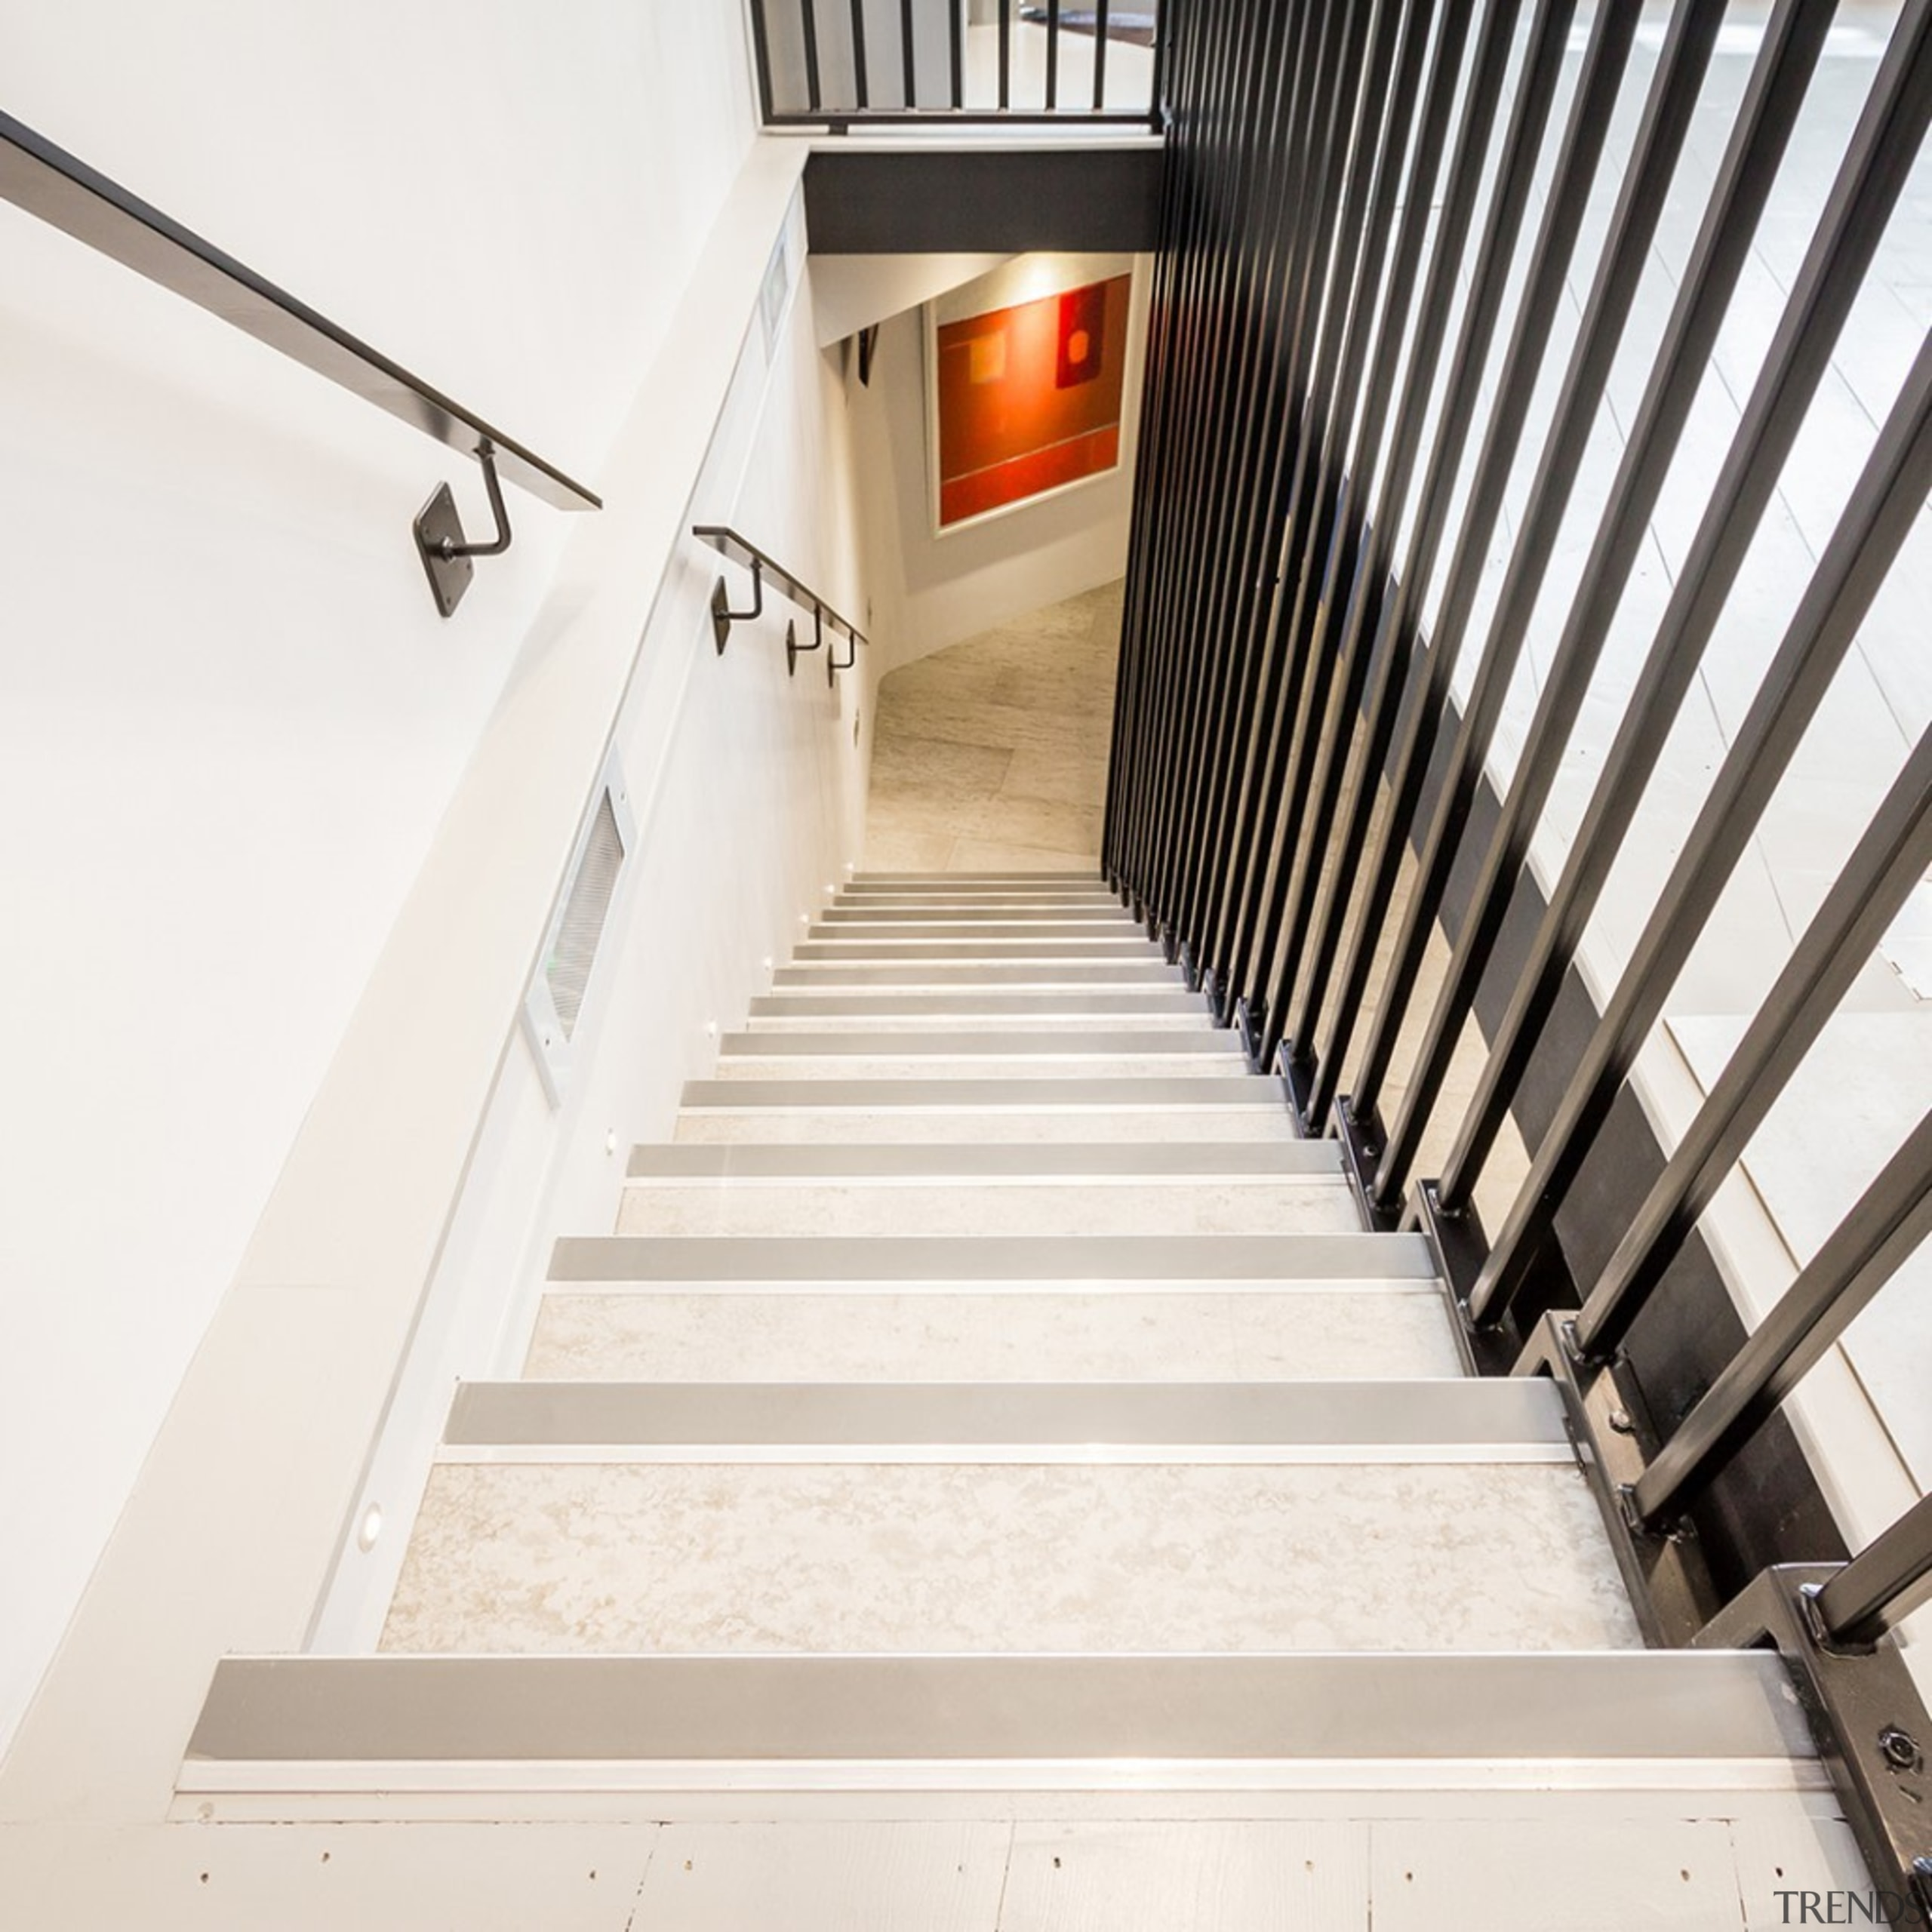 Concreate CF103 1 - Concreate_CF103_1 - architecture | architecture, daylighting, floor, flooring, handrail, home, house, stairs, white